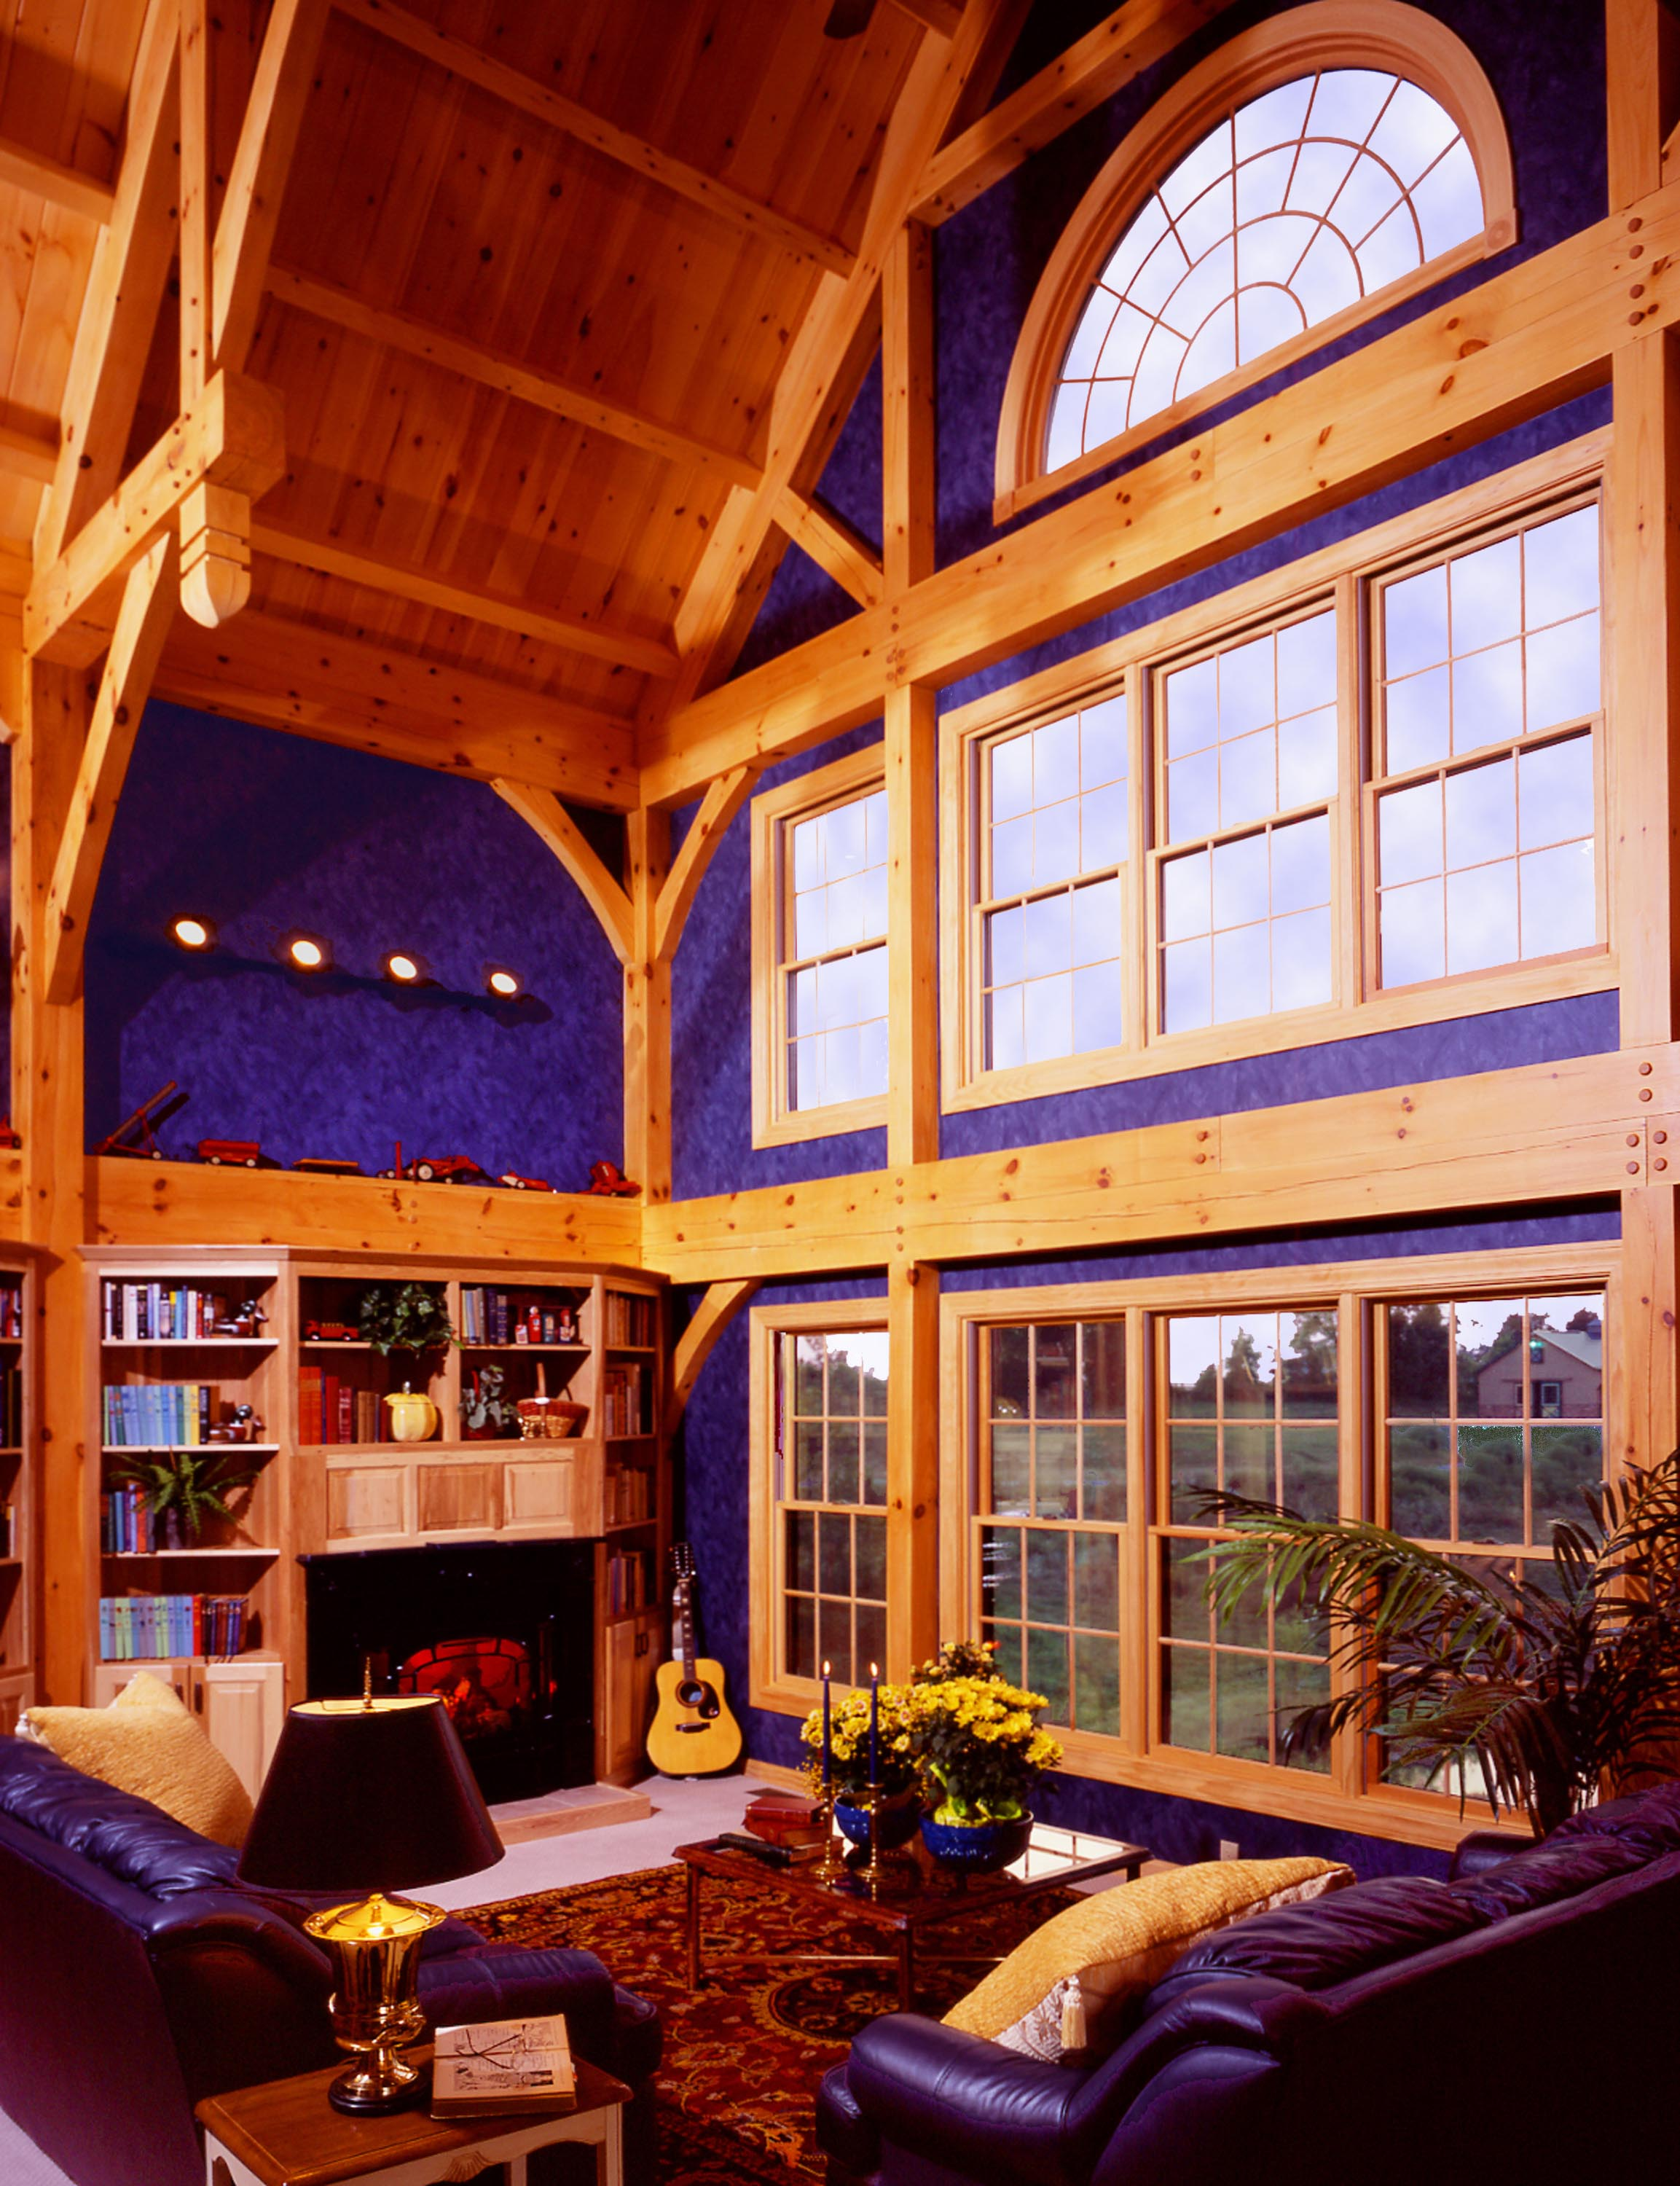 Timberframe Way By Dick Pirozzolo Covers This Unique Home